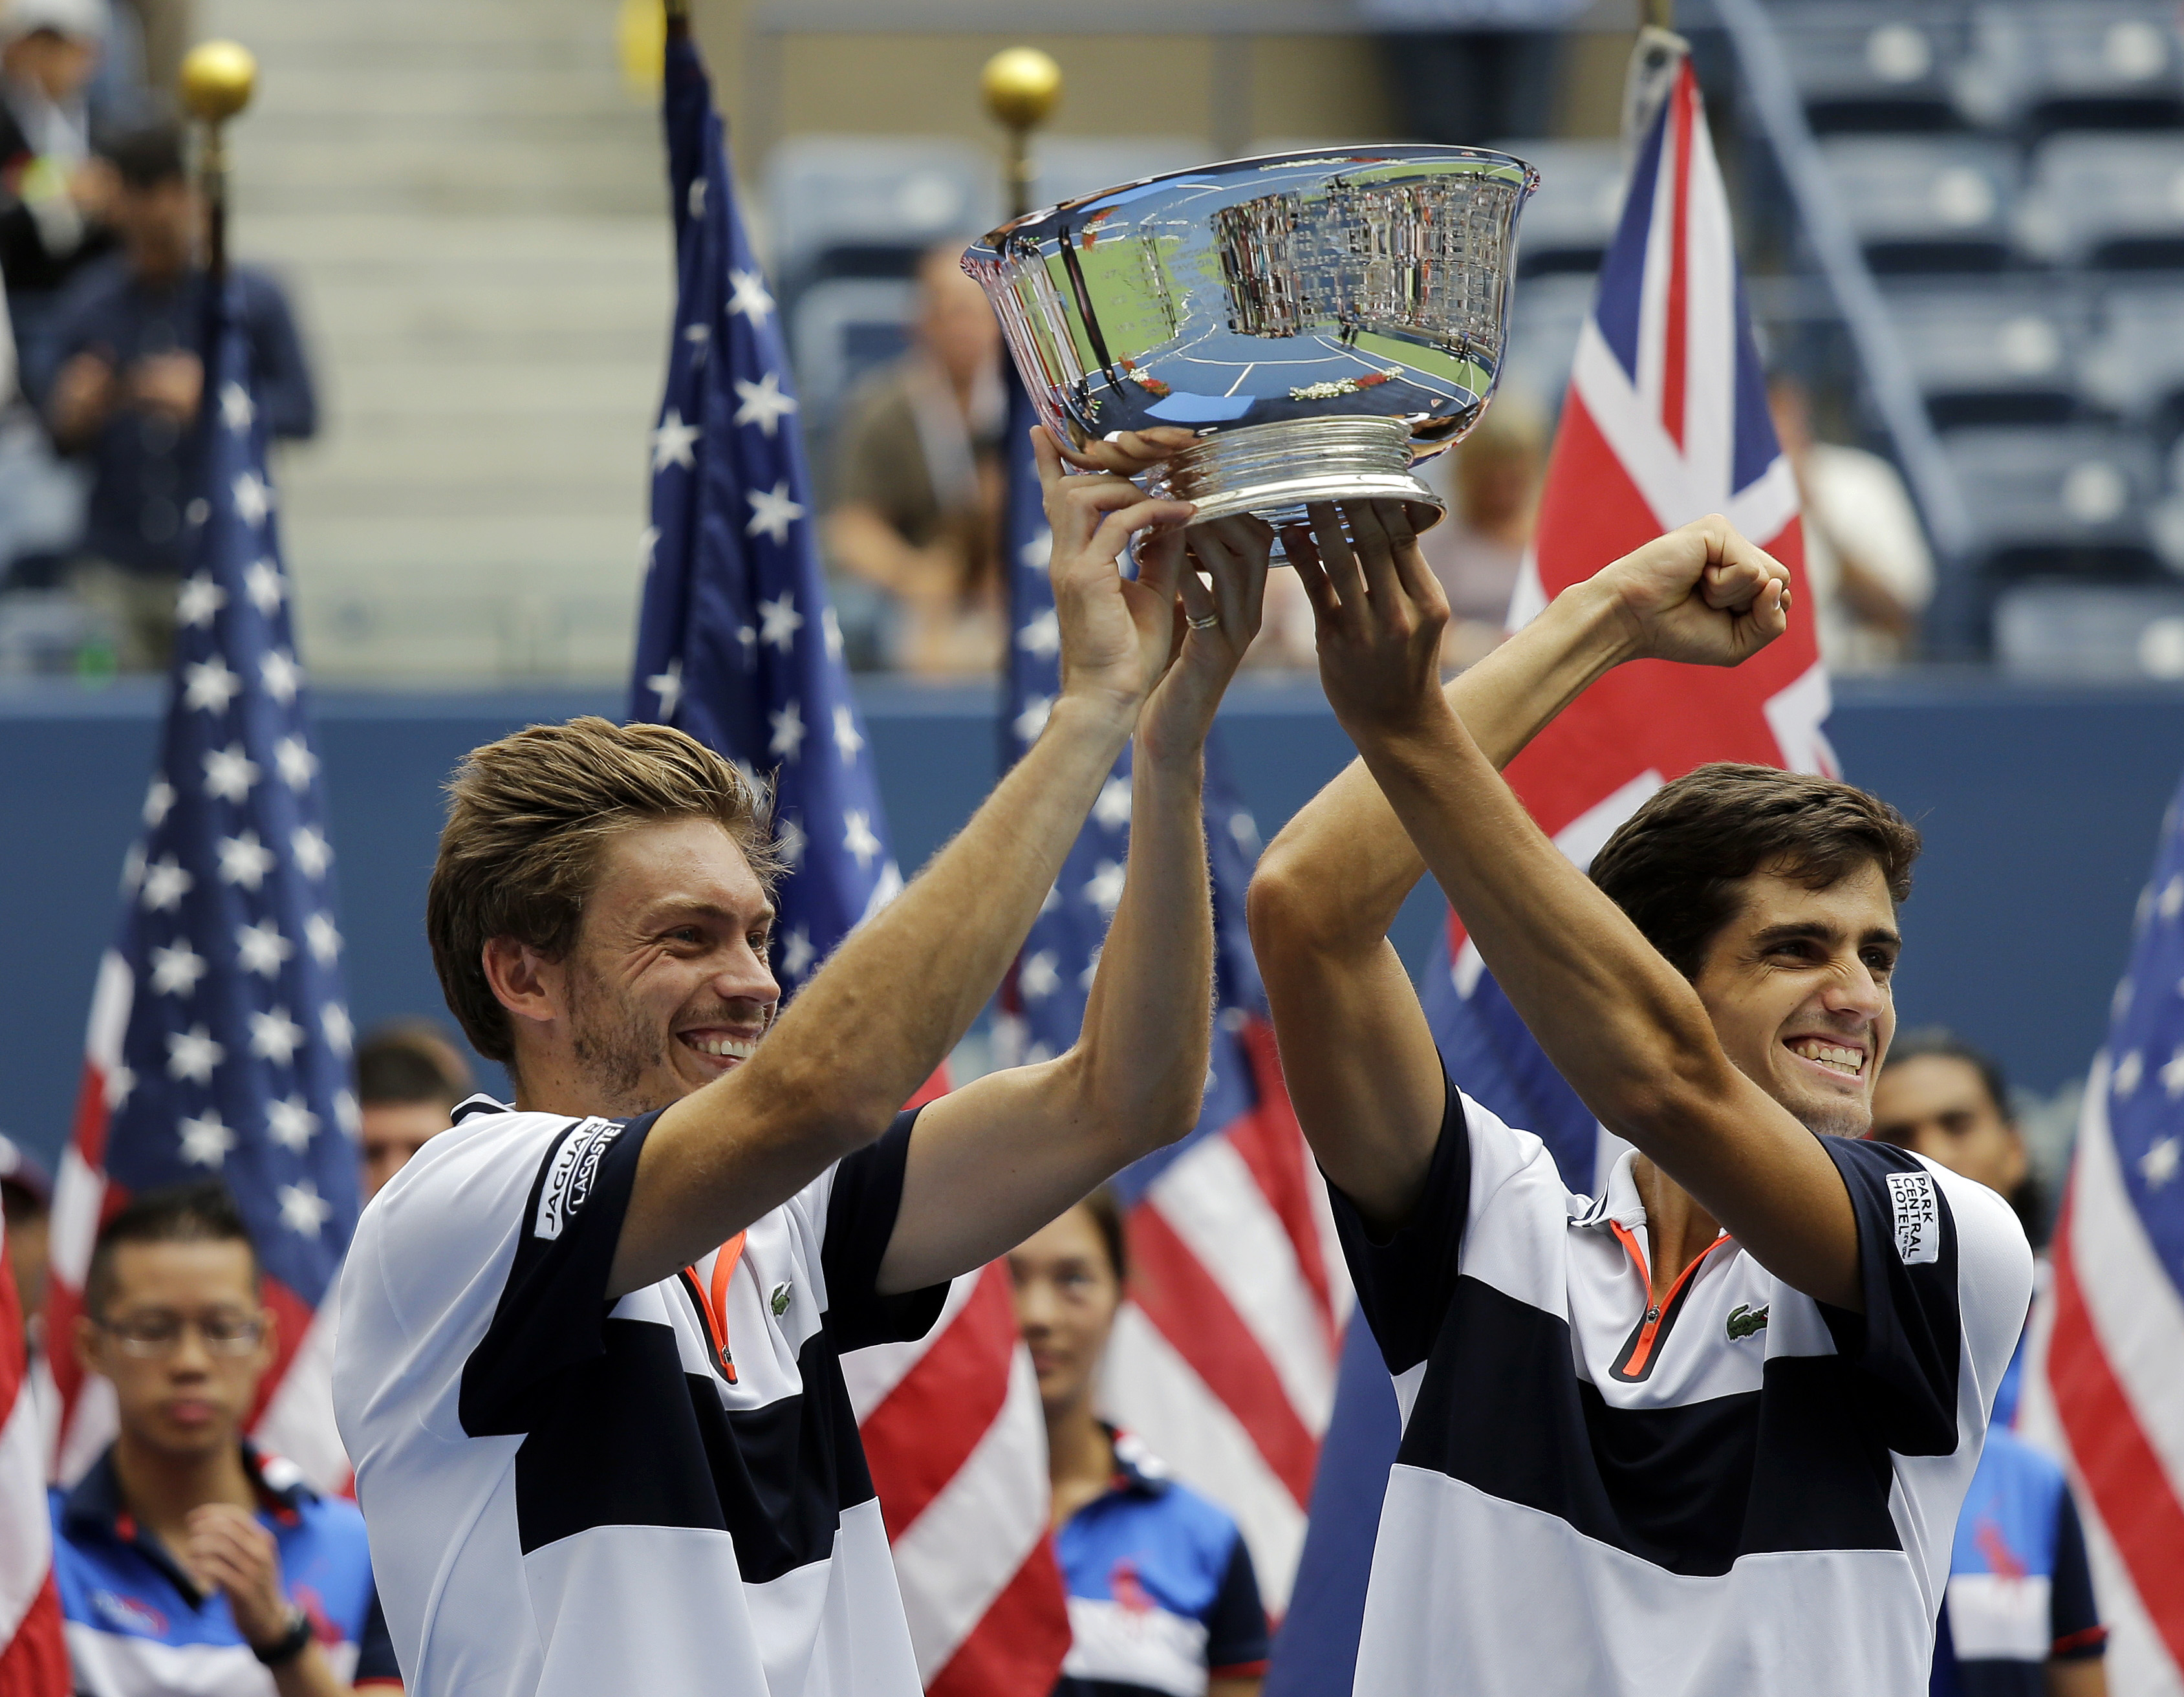 Pierre-Hugues Herbert, right, of France, and Nicolas Mahut, of France, hold up the men's doubles championship trophy after beating John Peers, of Australia, and Jamie Murray, of the United Kingdom, in the men's doubles final at the U.S. Open tennis tourna